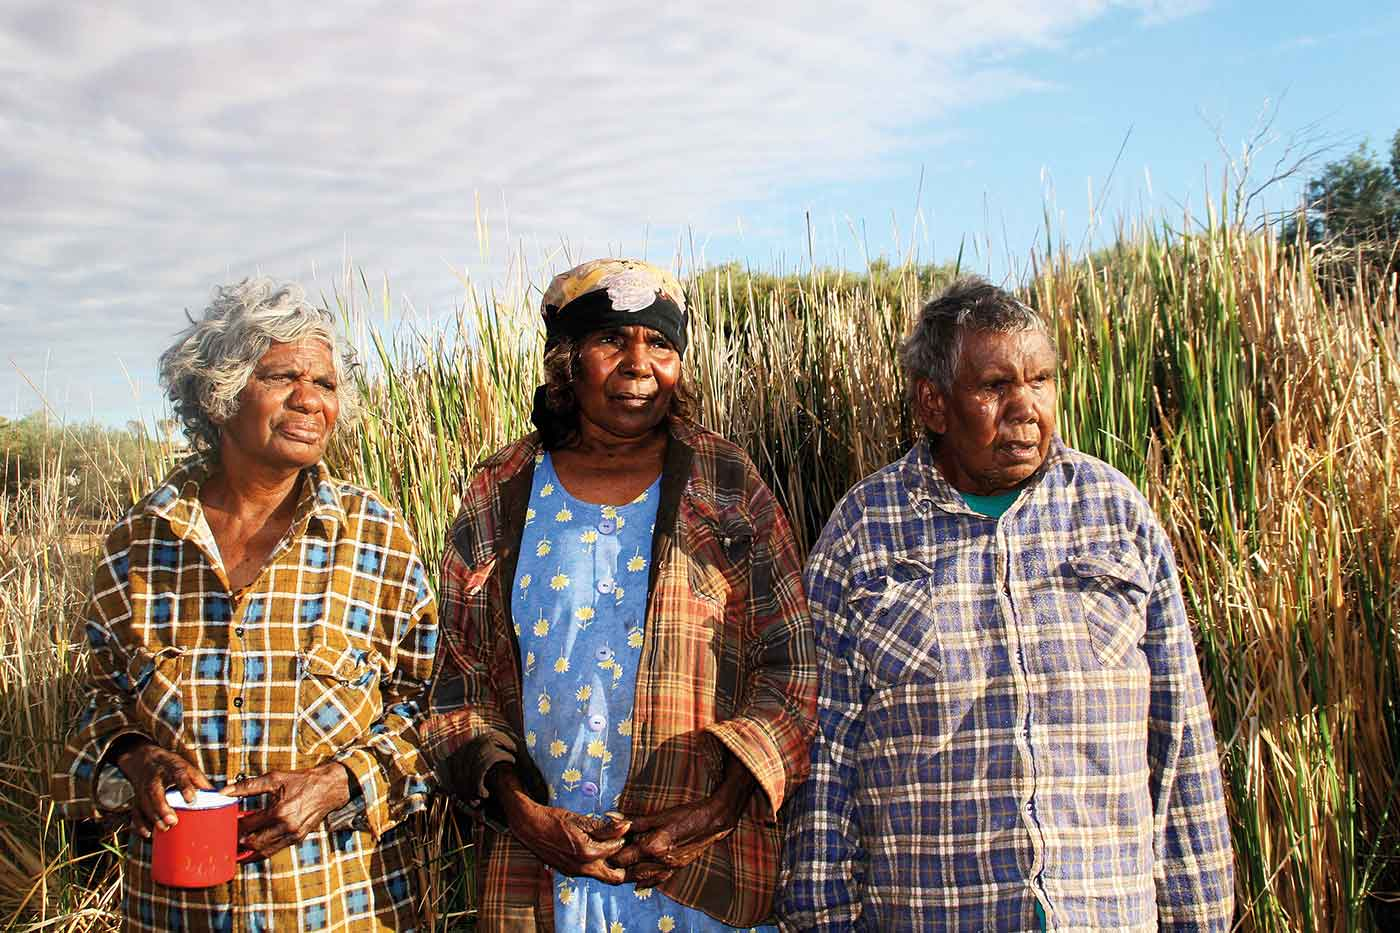 Colour photo of two women and one man standing in front of tall reeds.